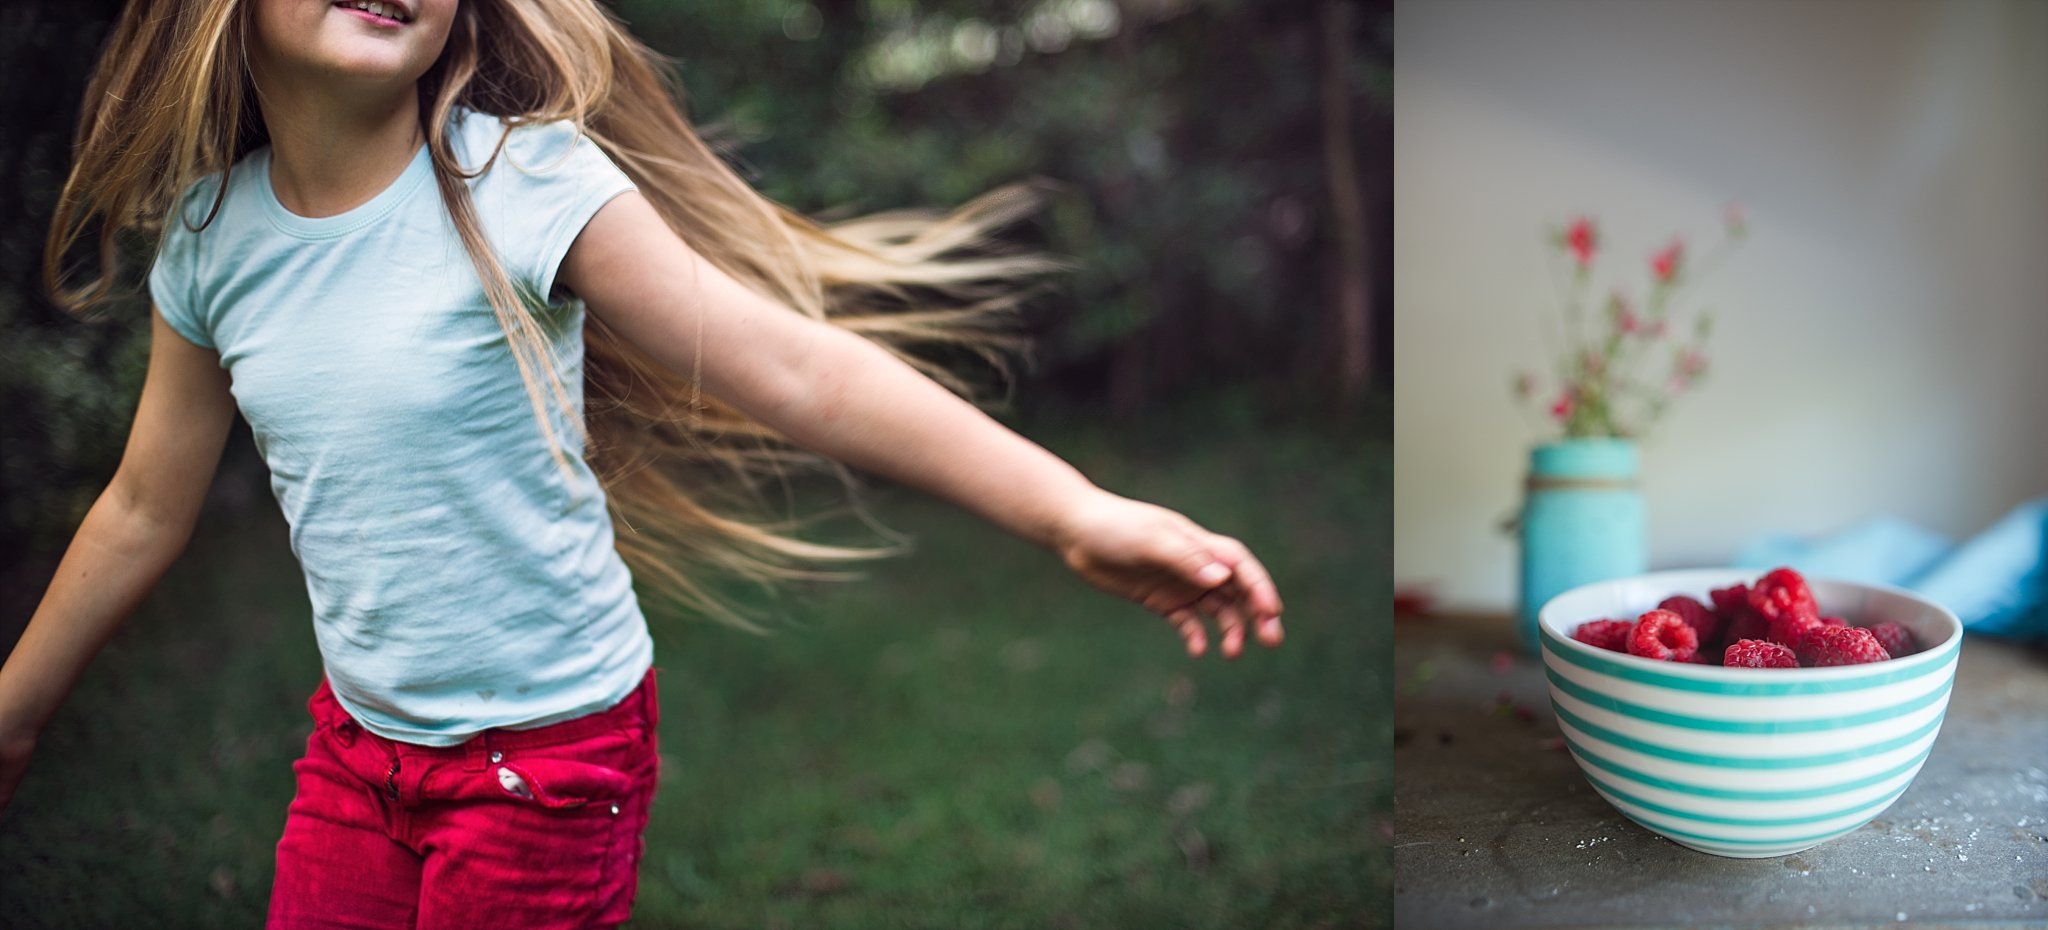 A diptych celebrating red and aqua with still life and portrait of a girl spinning by Hills District Photographer, Cindy Cavanagh